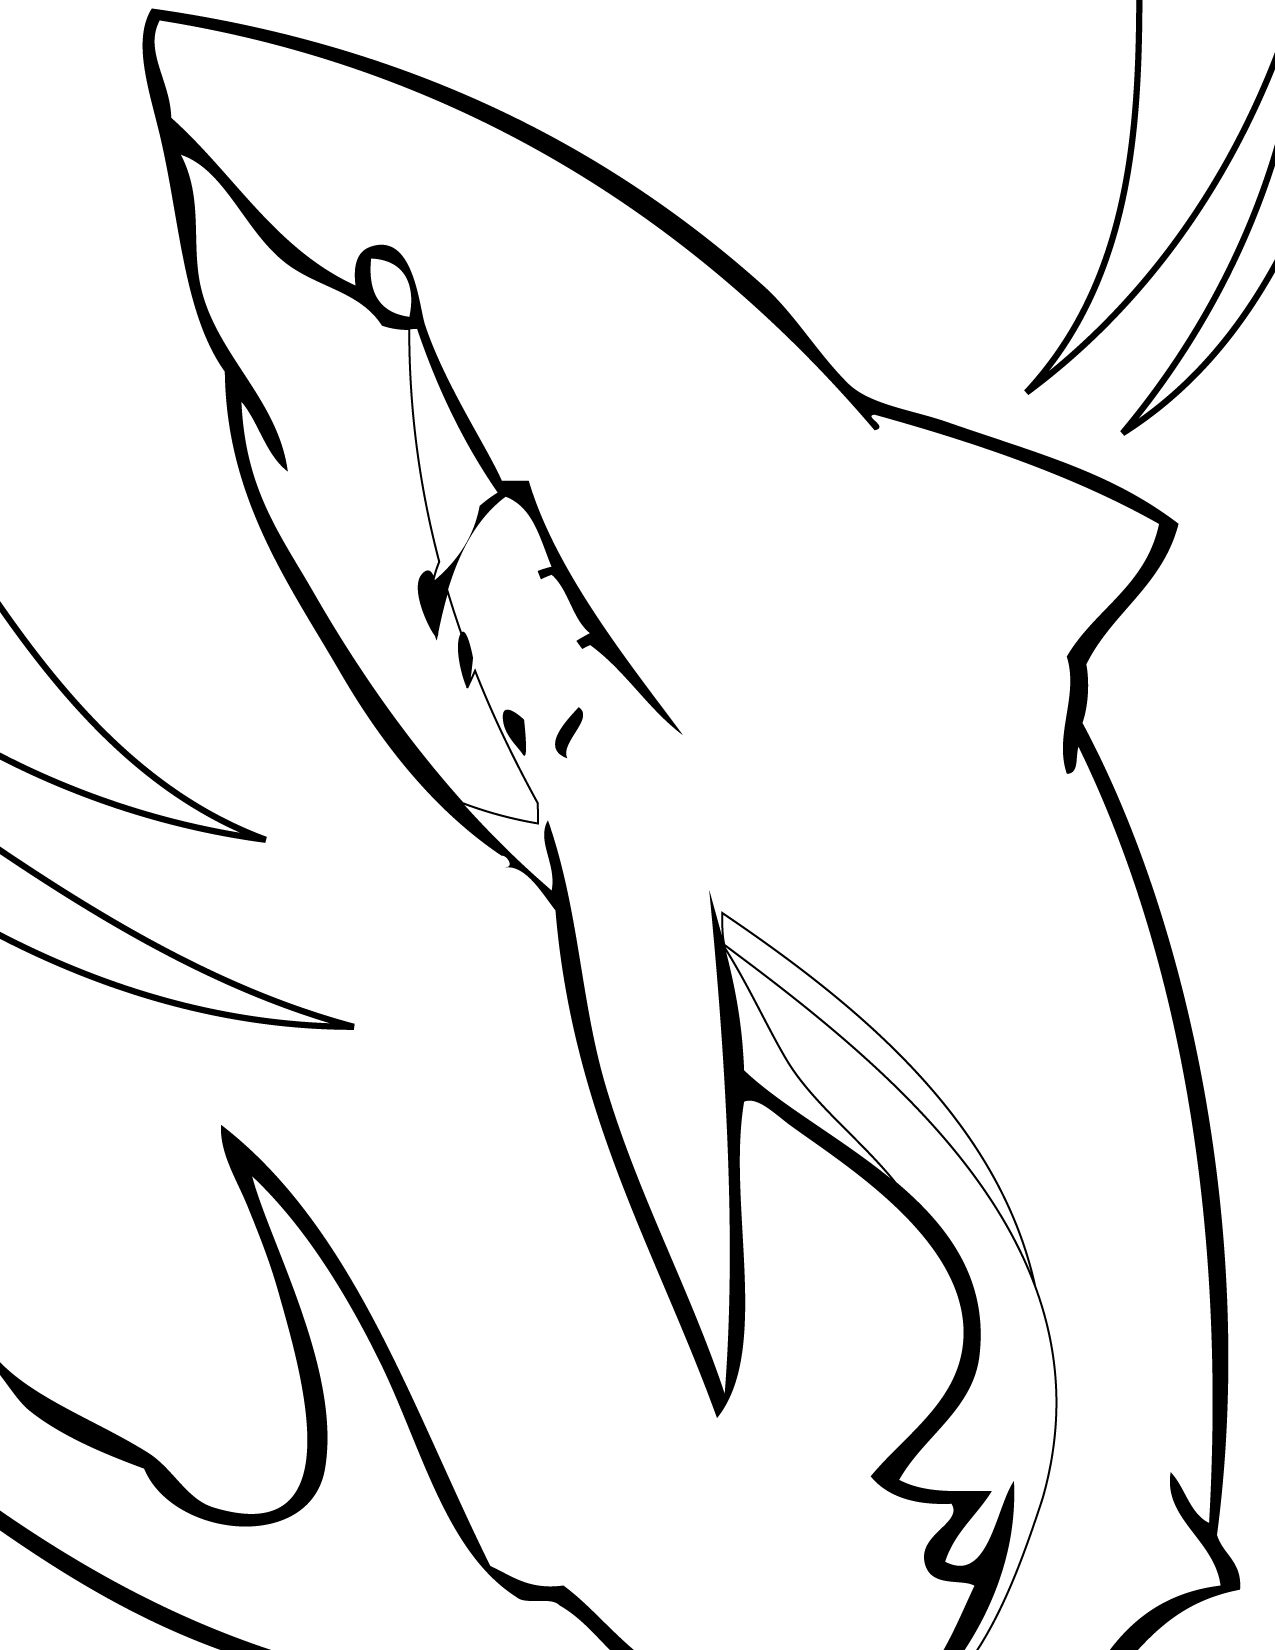 cute shark coloring pages baby shark coloring page coloring pages pinterest pages shark cute coloring